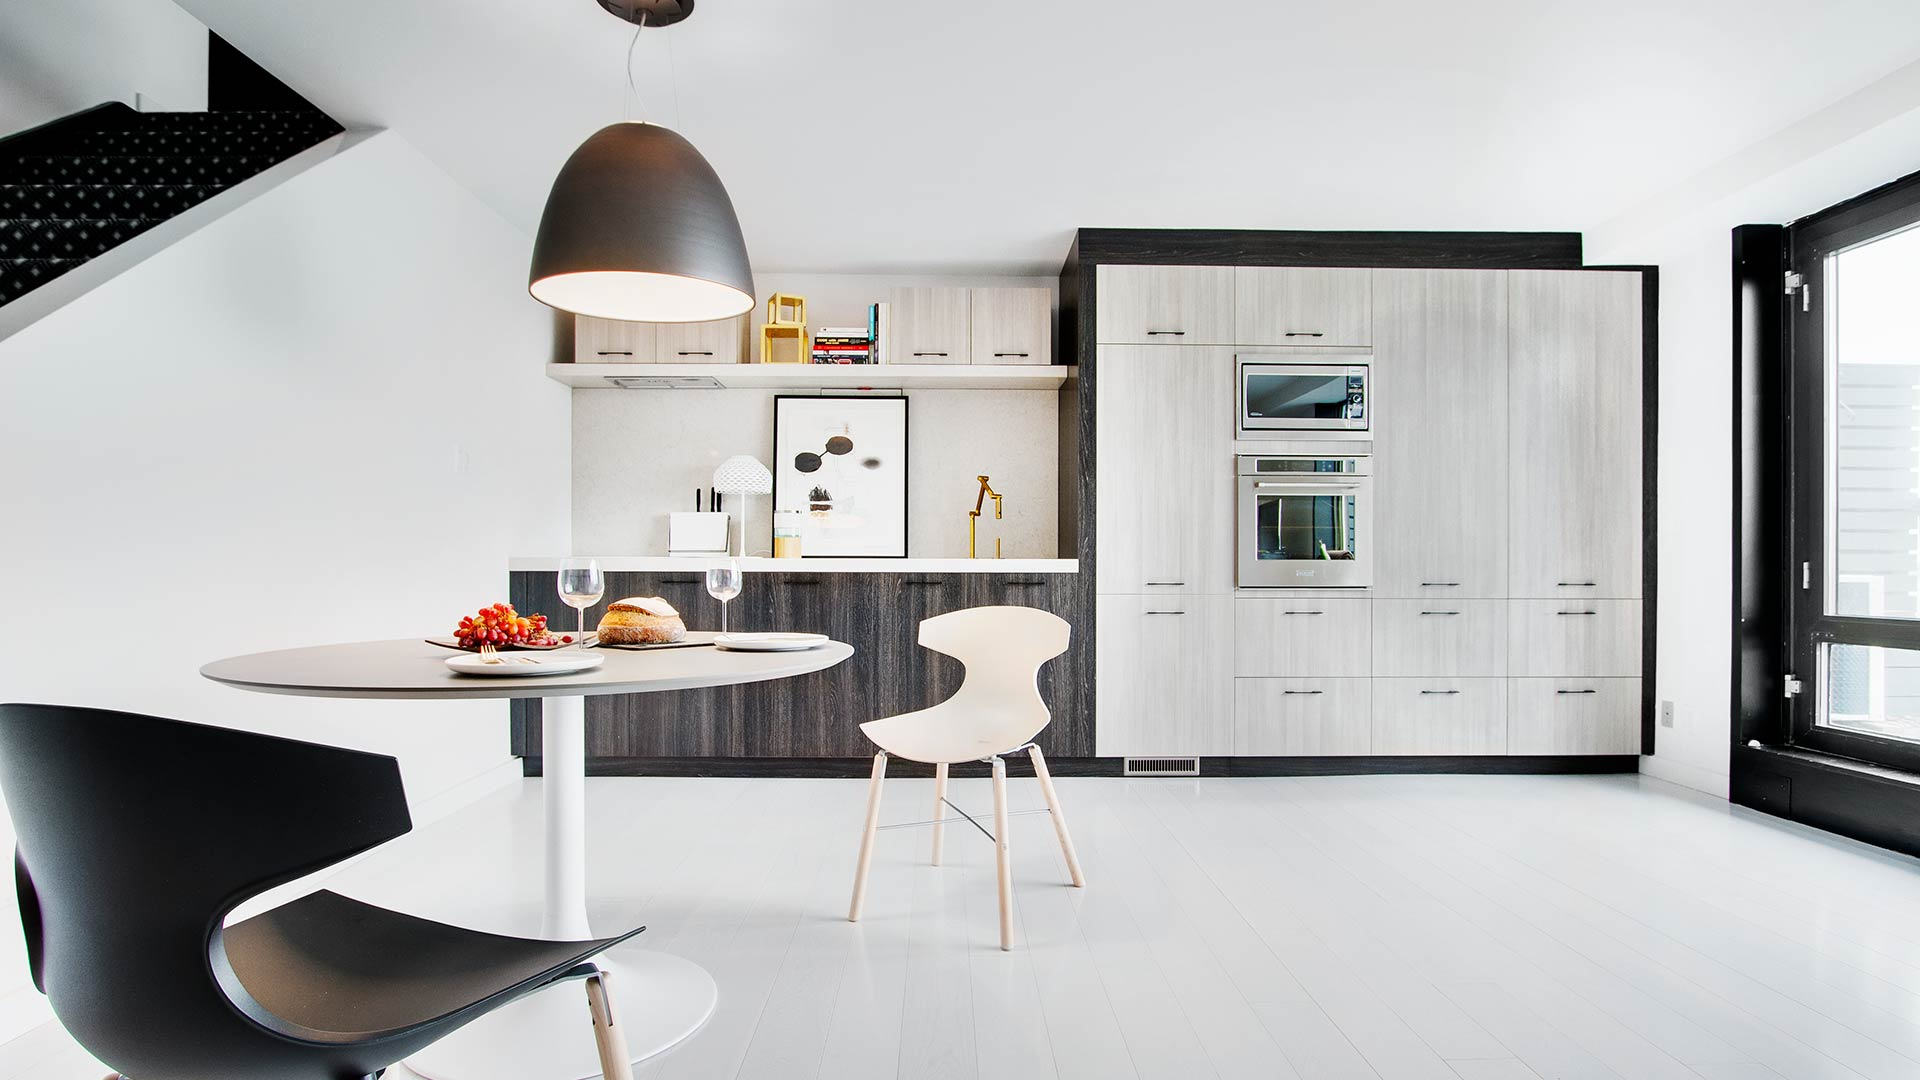 Style rough chic contemporain cabinets en m lamine for Eco cuisine verdun